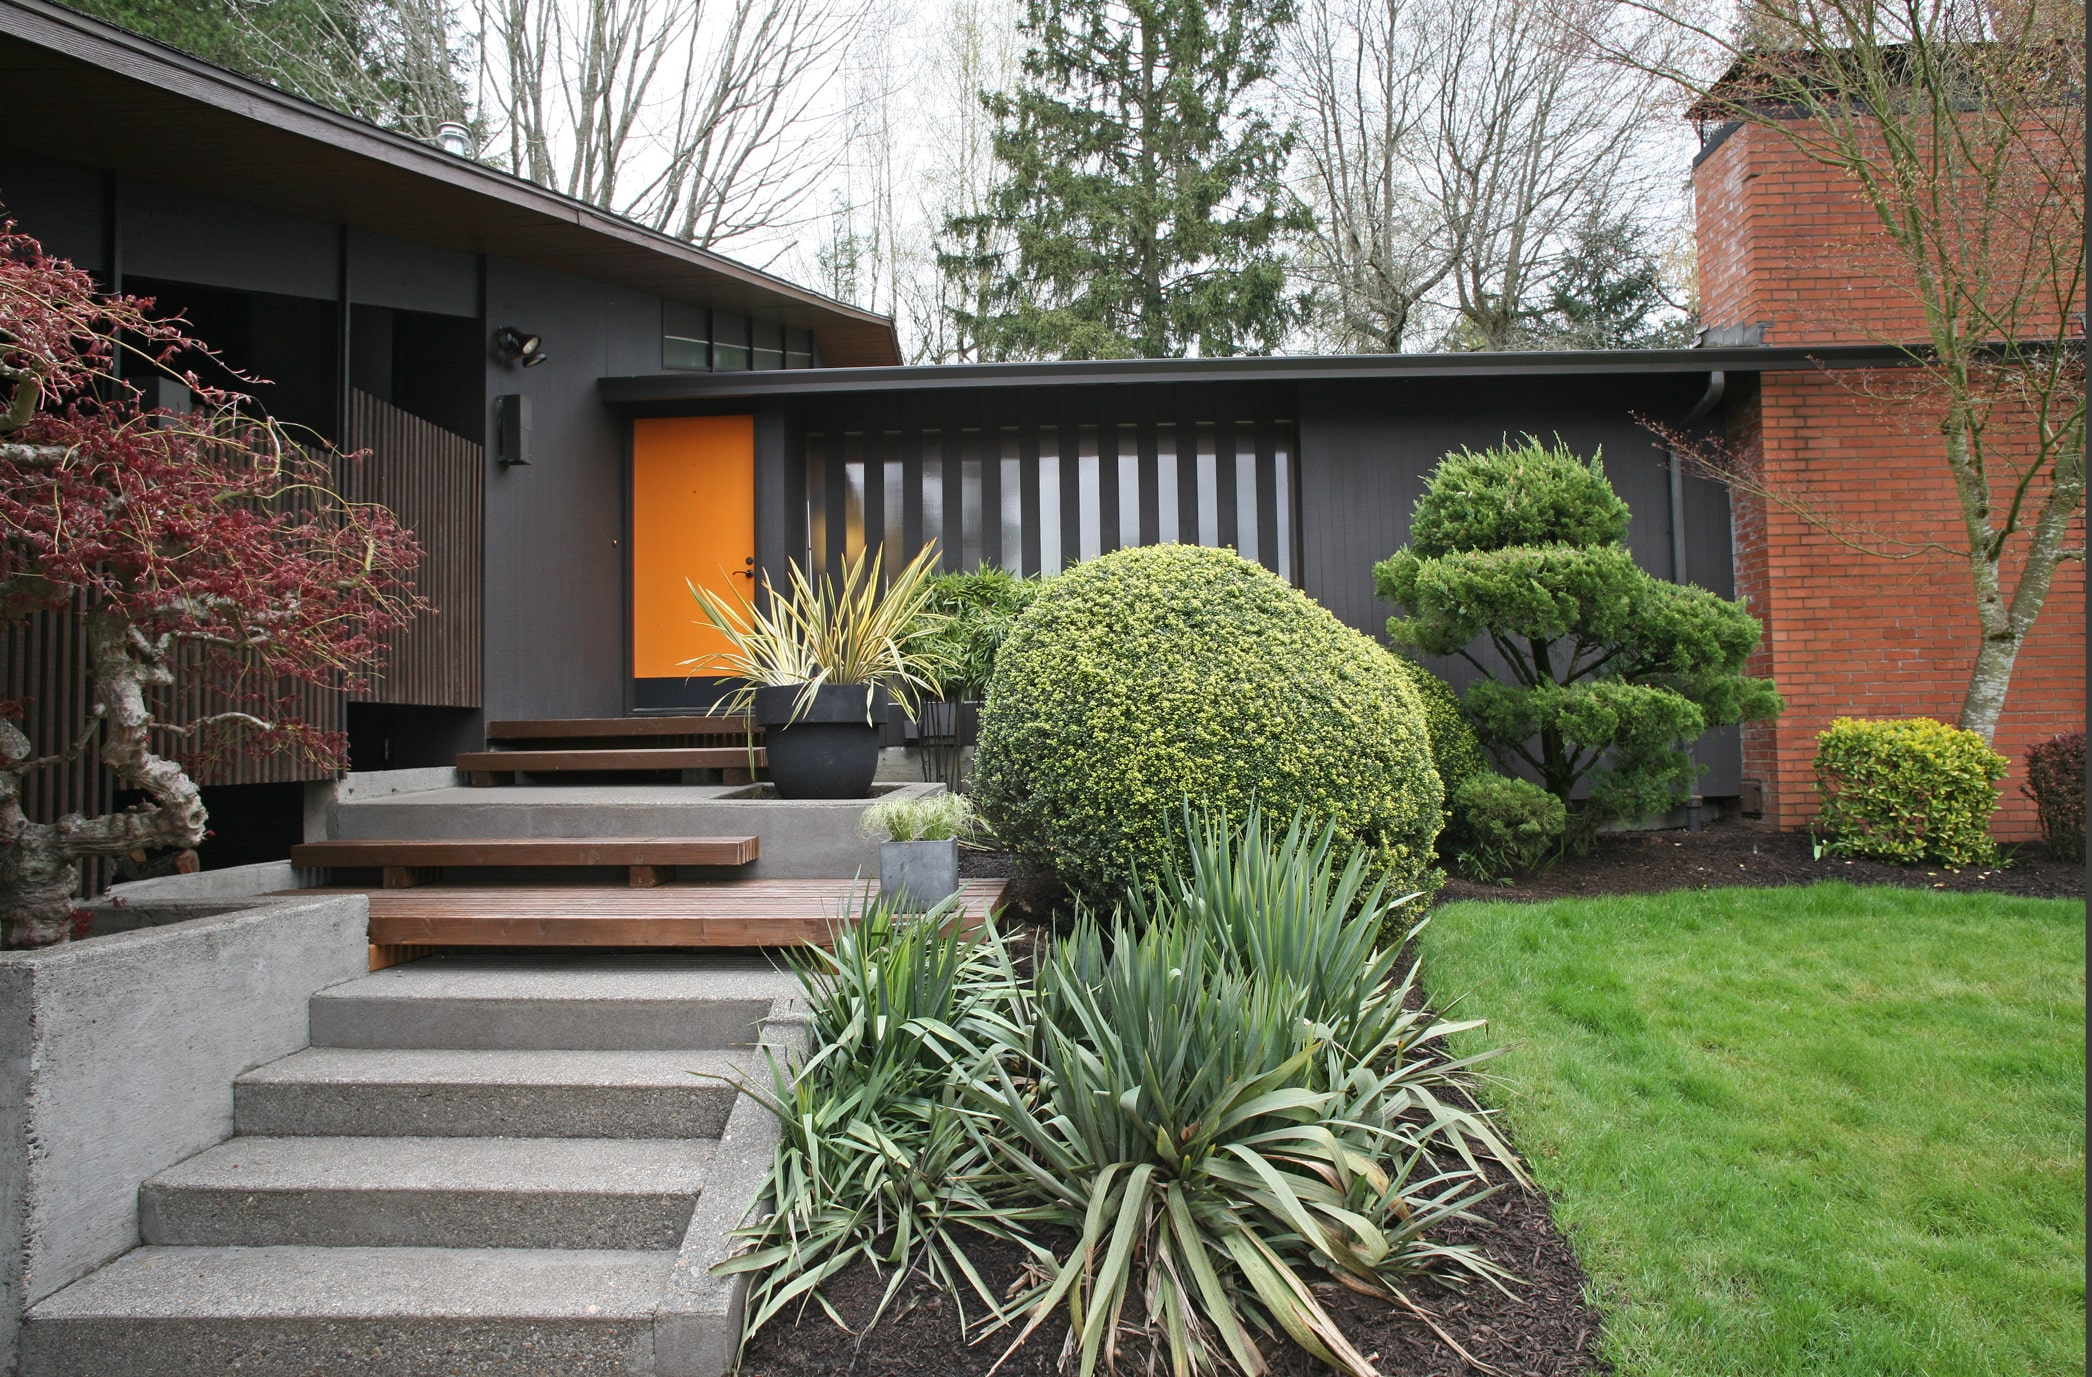 The best neighborhoods to find mid century modern homes in Modern house portland